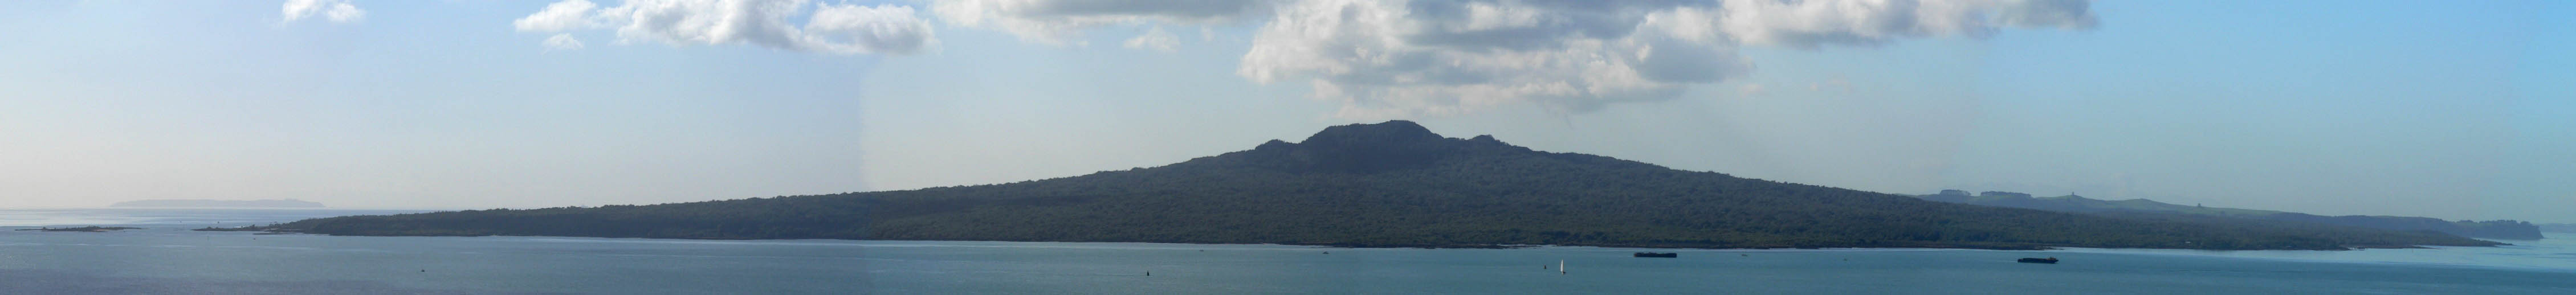 © Picture source: http://www.tracenz.org/elements/V004_rangitoto.html